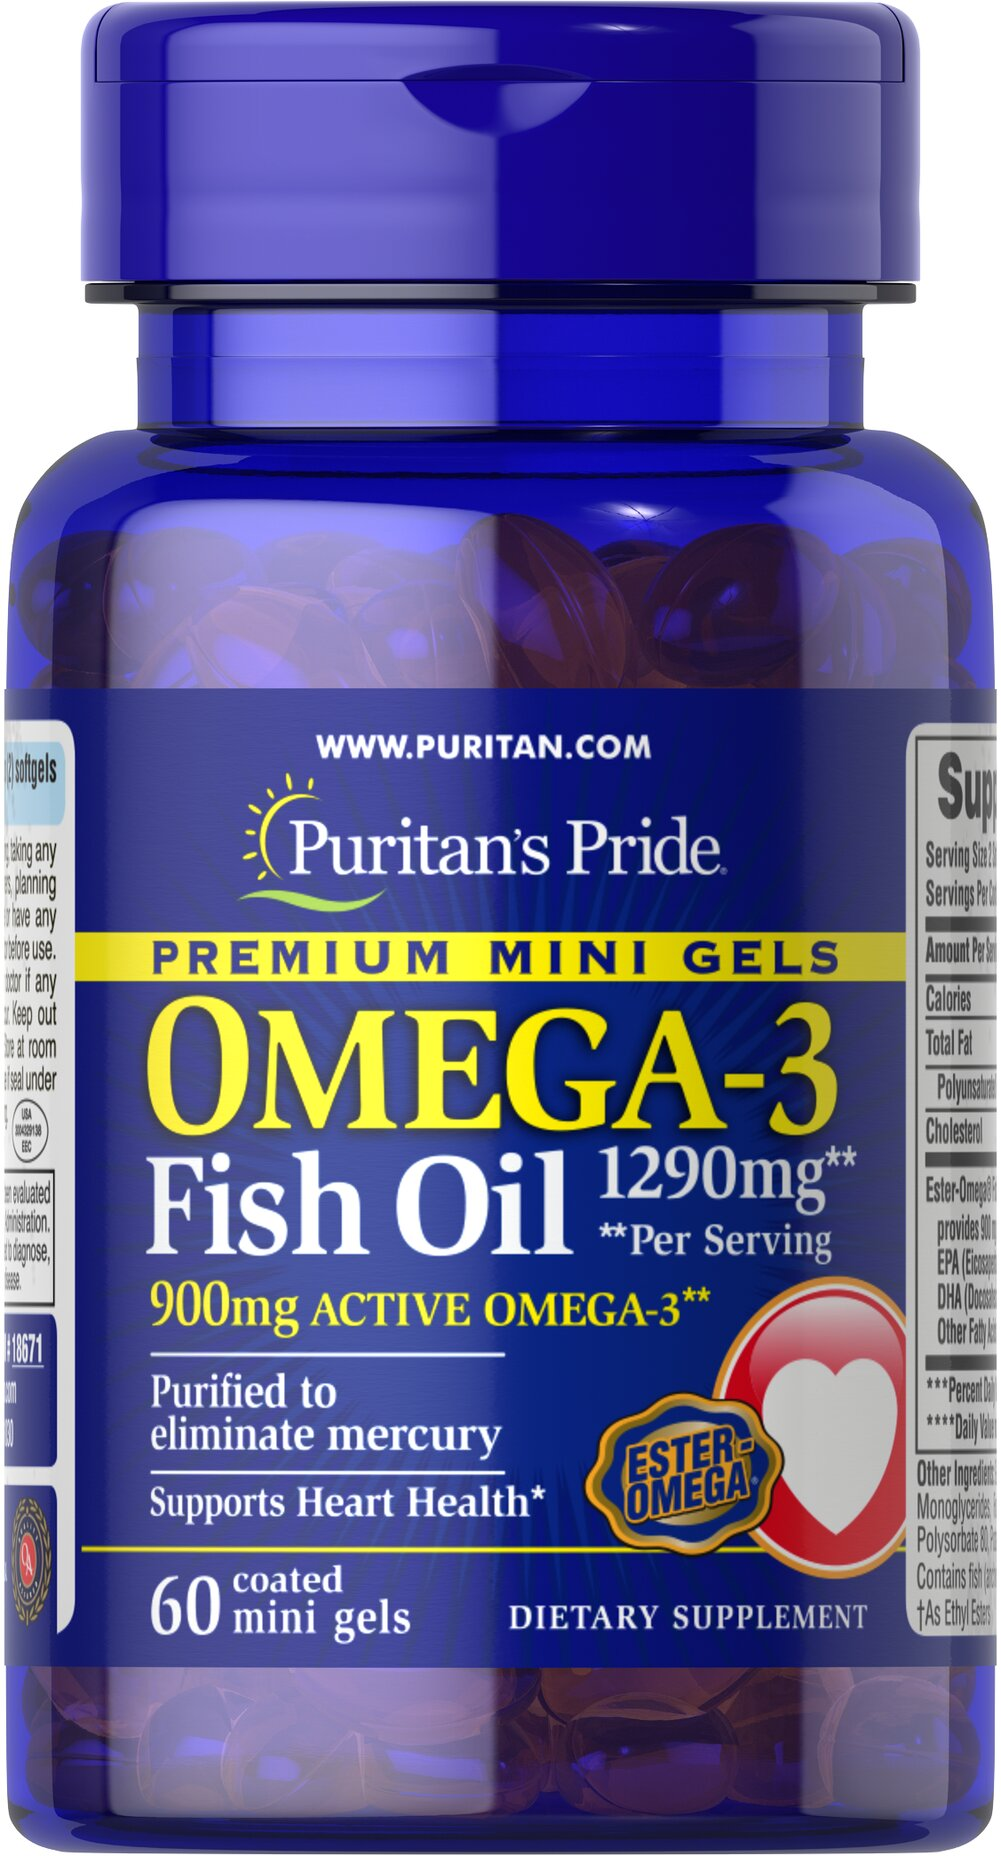 Omega-3 Fish Oil 1290 mg Mini Gels (900 mg Active Omega-3) Per Serving Thumbnail Alternate Bottle View